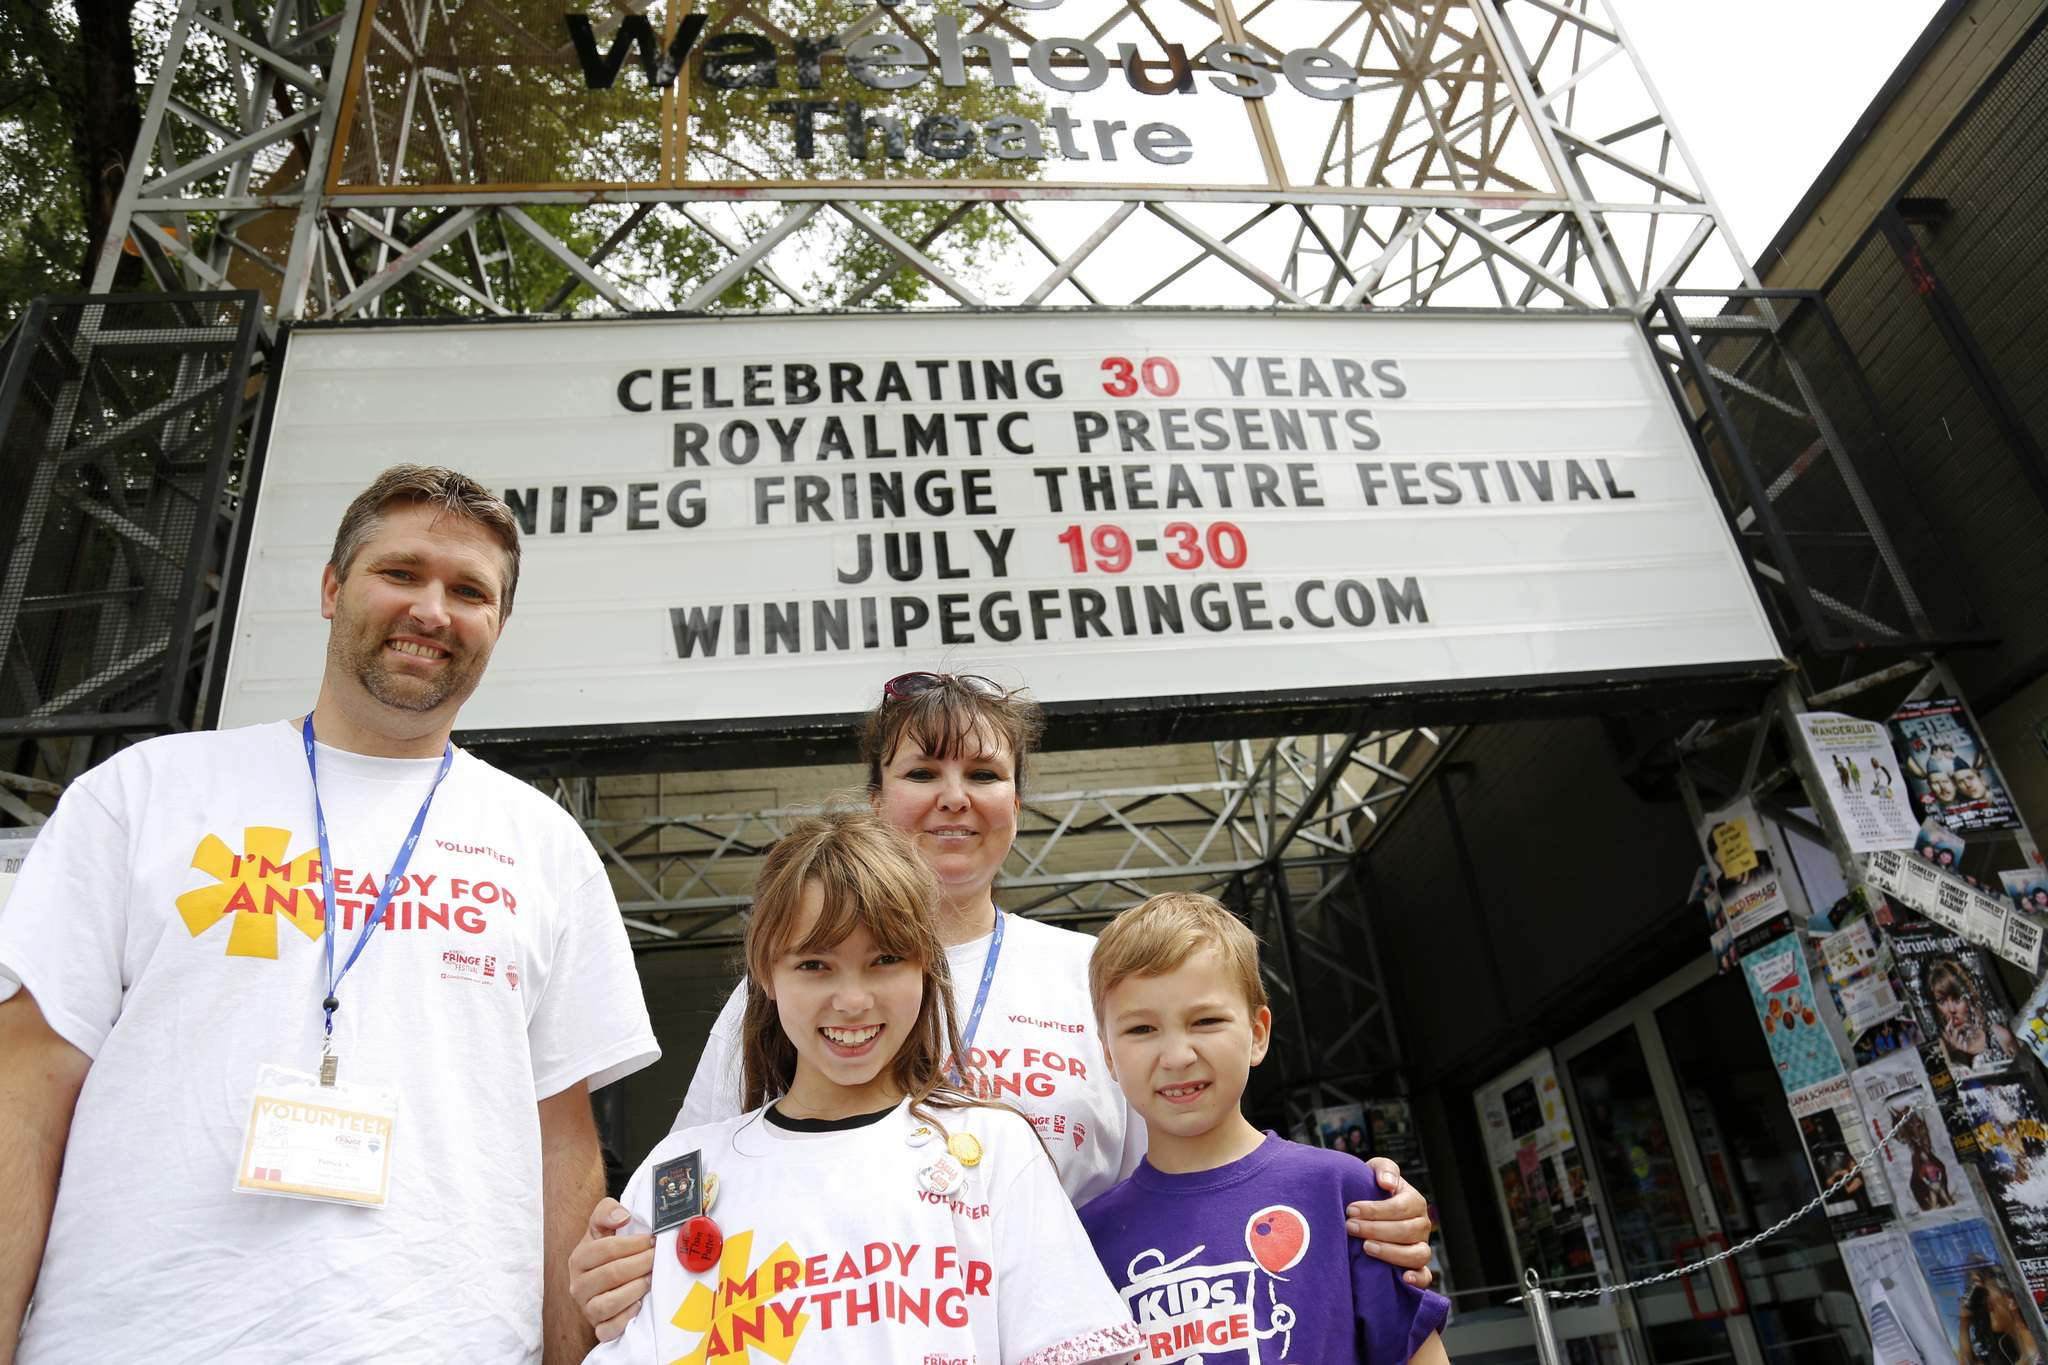 JUSTIN SAMANSKI-LANGILLE / WINNIPEG FREE PRESS</p><p>Patrick and Kathleen Armstrong have been volunteering at the Winnipeg Fringe Theatre Festival since 2006. The Armstrong&rsquo;s children, Sadie and Beckett, join their parents on their shifts.</p>